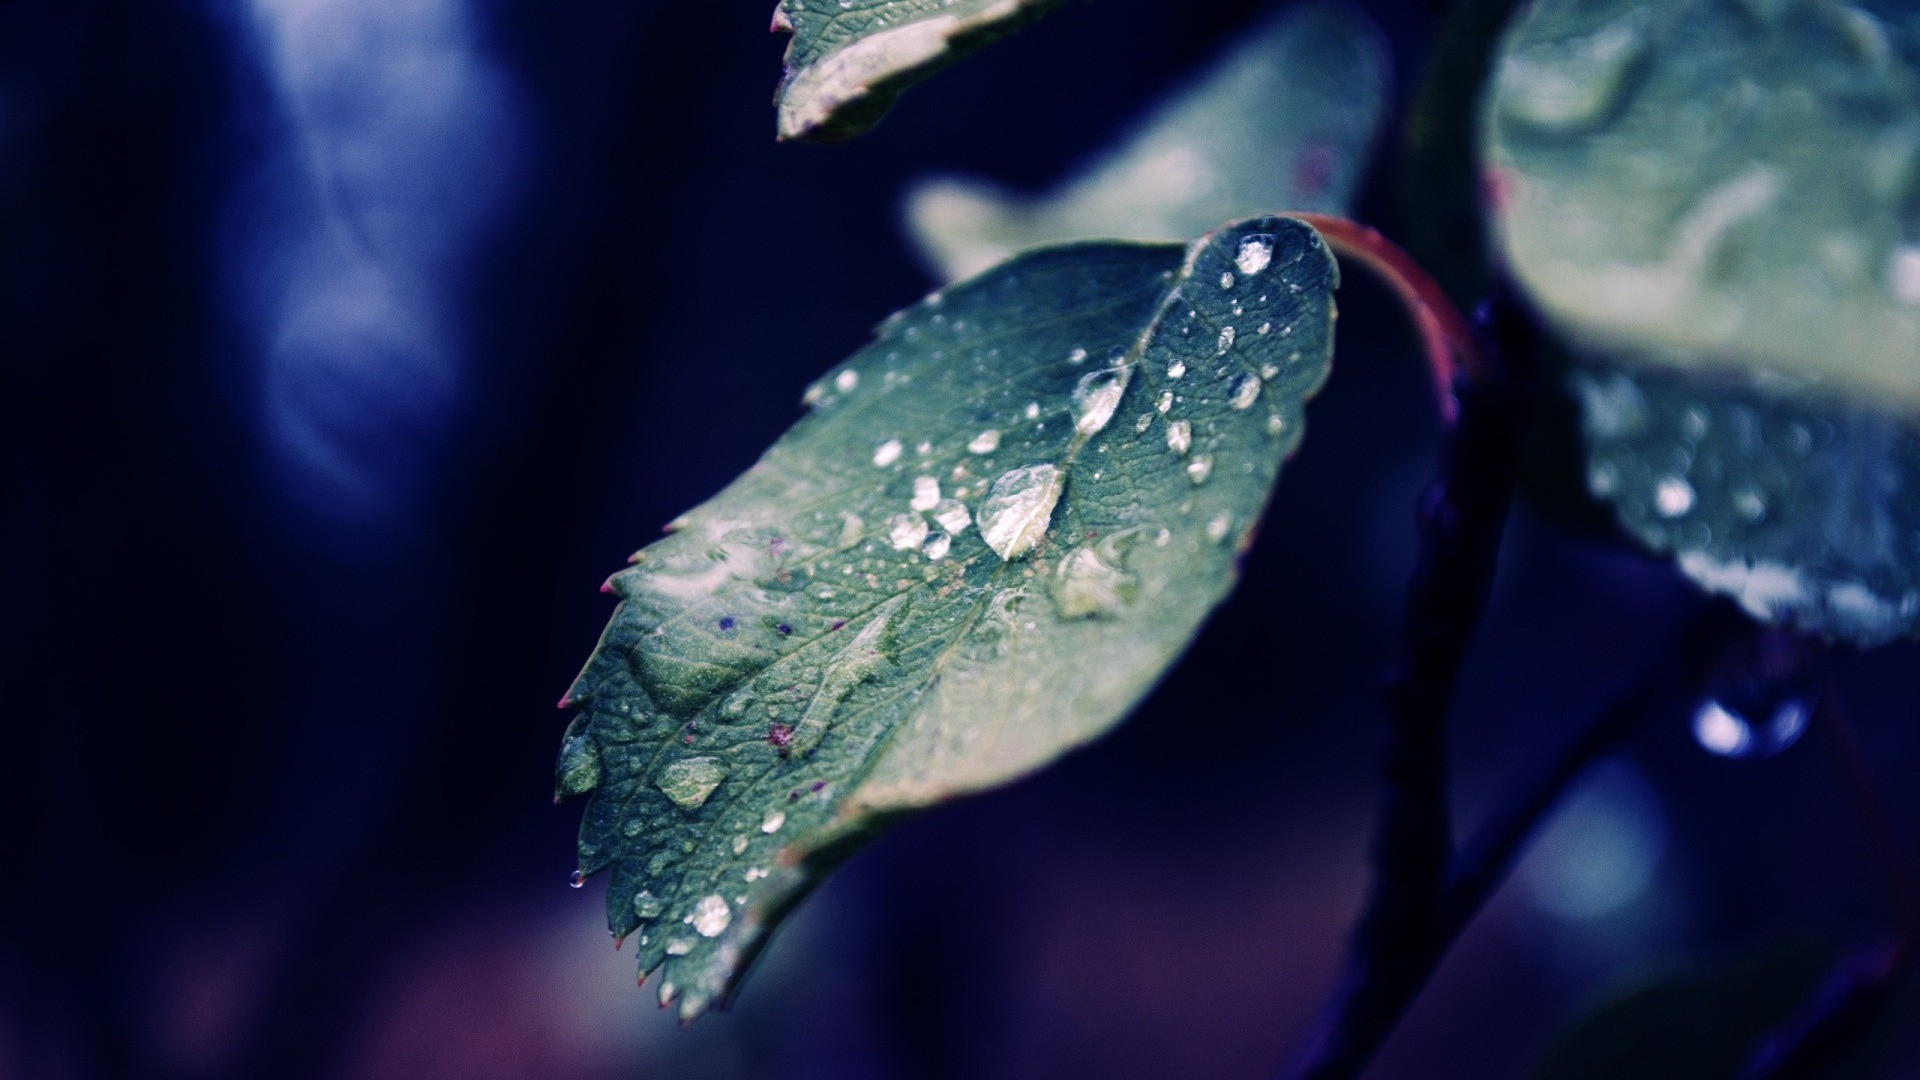 Under Armour Wallpaper Iphone X Rain Wallpaper Hd 183 ① Download Free Awesome Full Hd